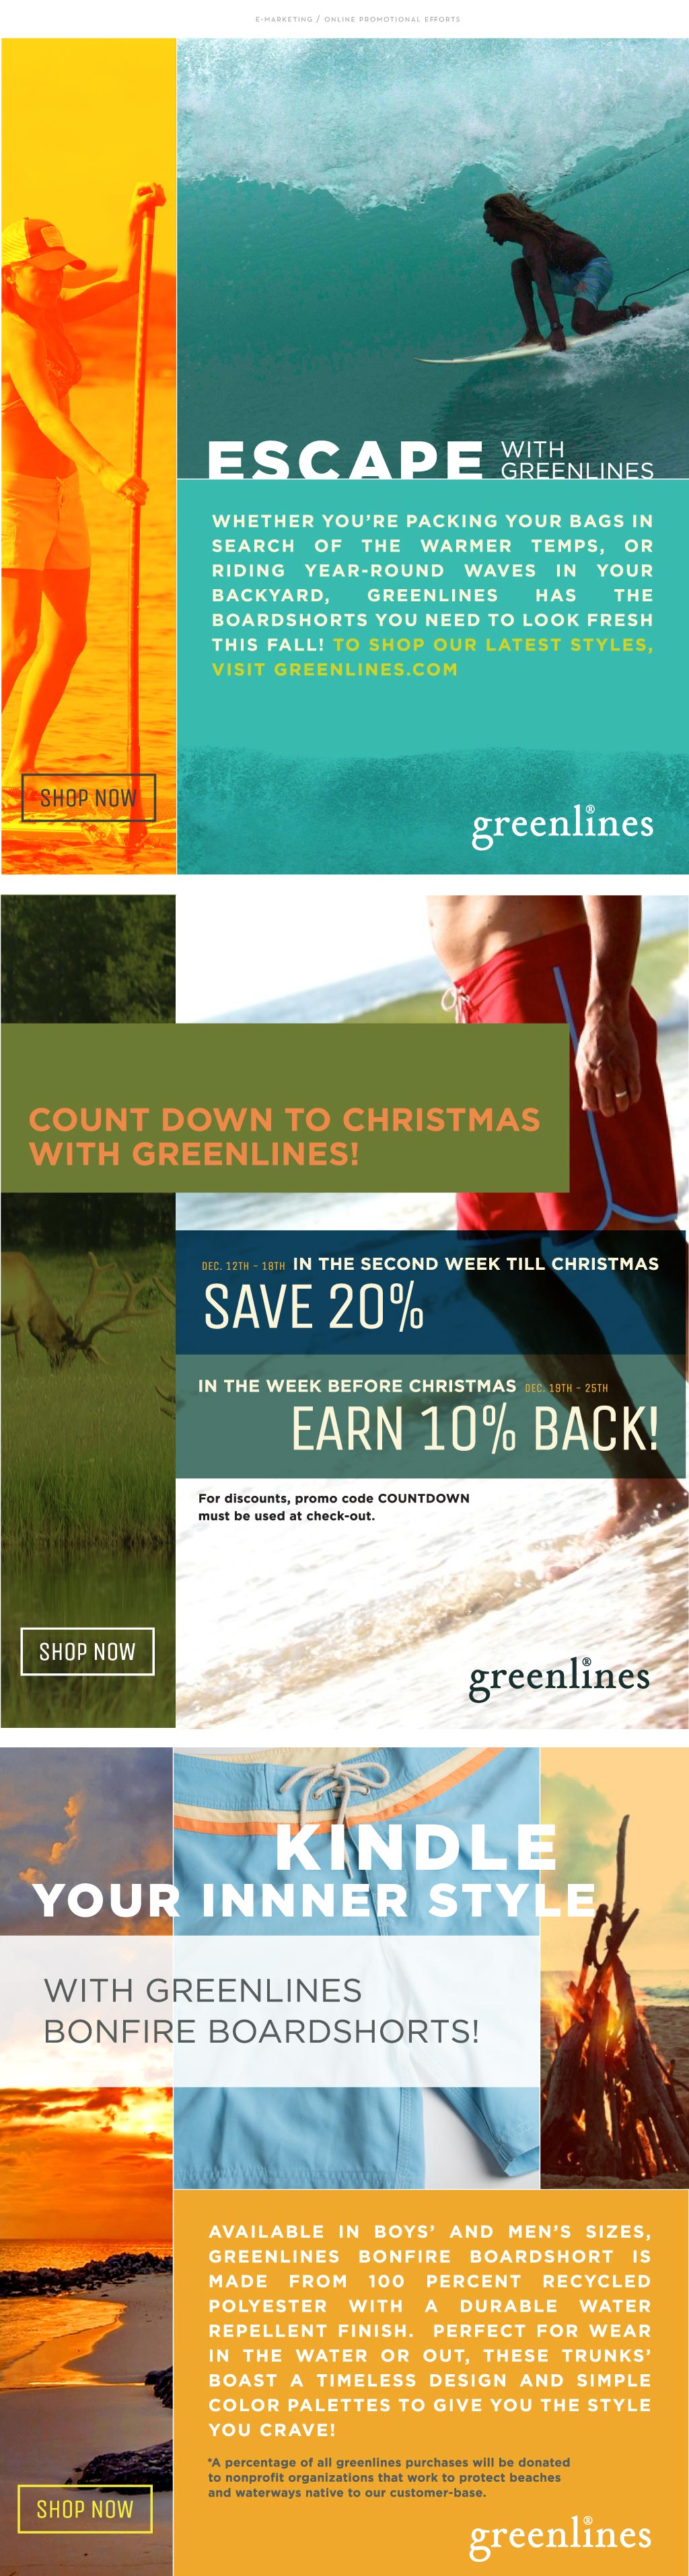 Greenlines email marketing by M studio